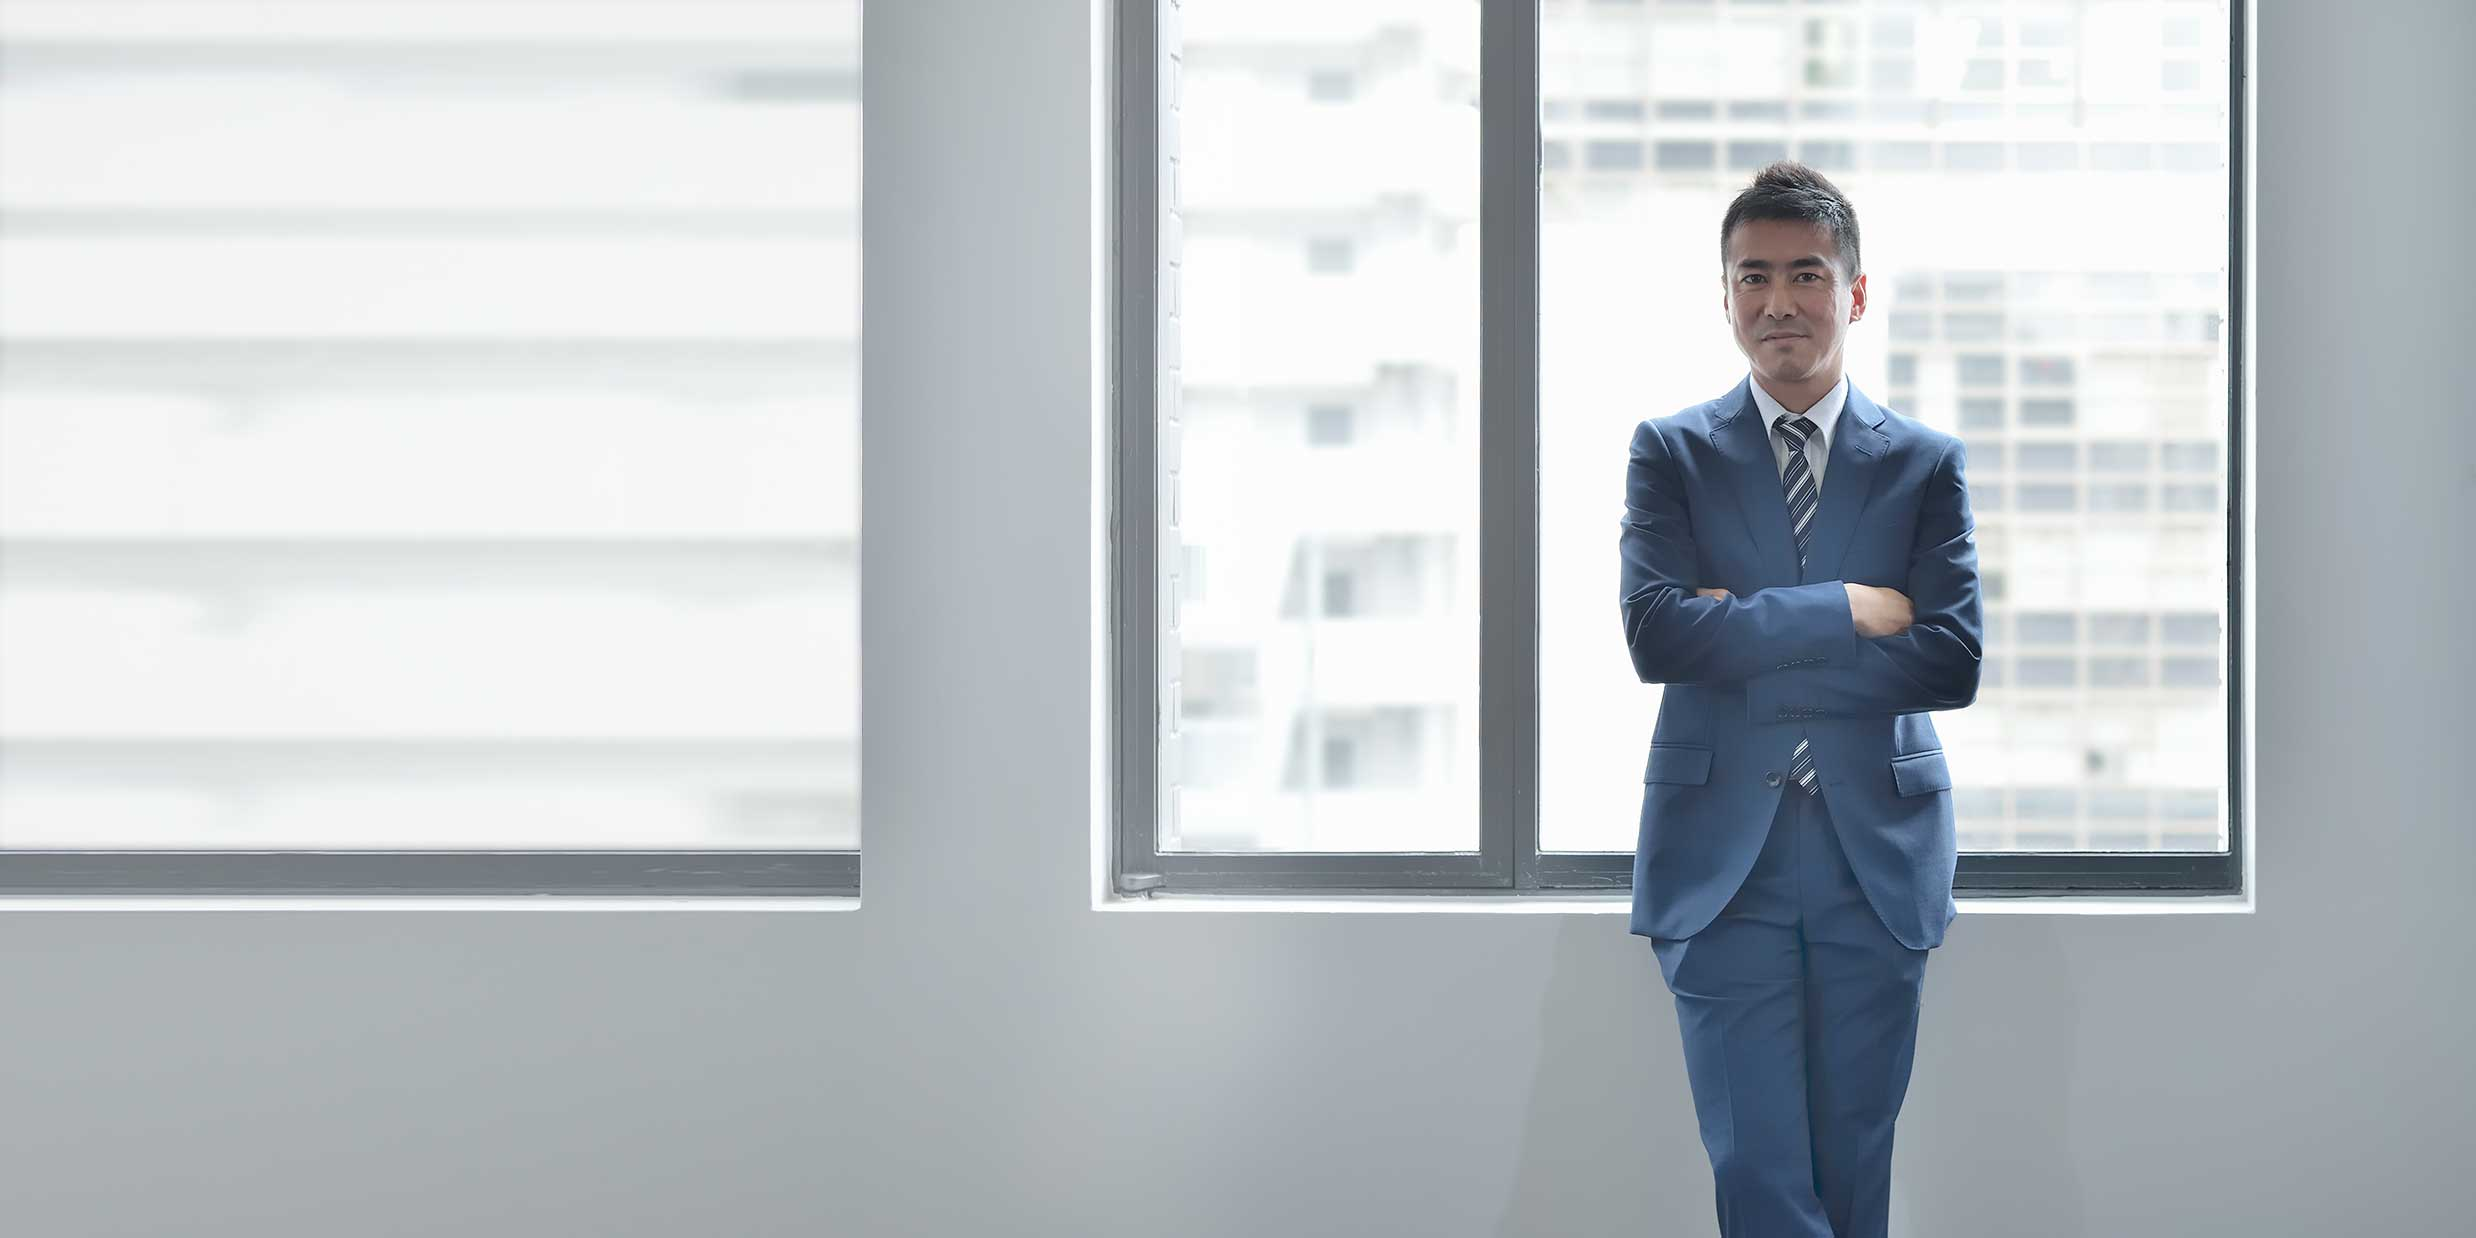 Man wearing executive clothes in front of a window